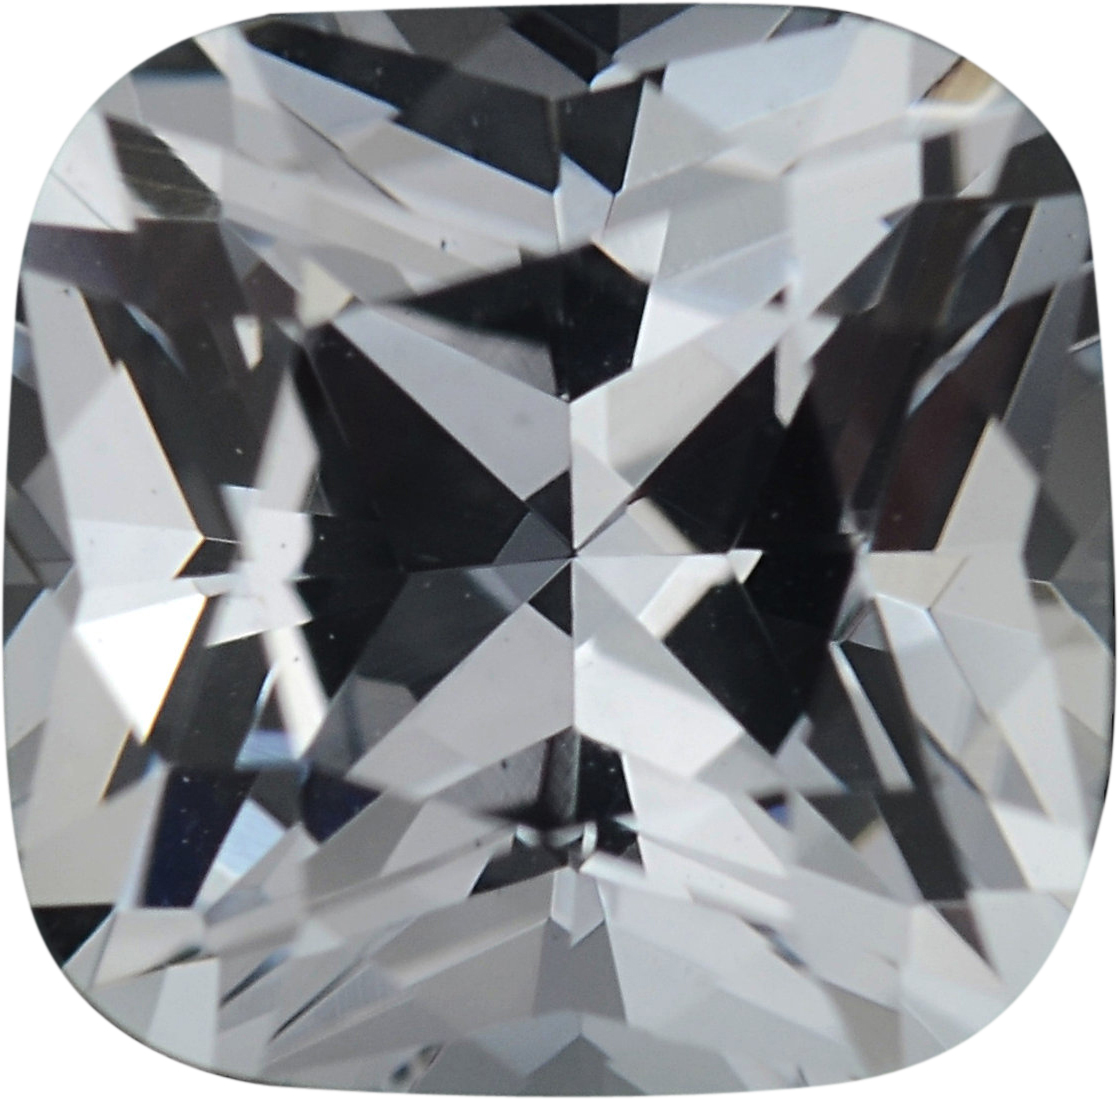 0.95 carats Antique Square Cut Genuine White Sapphire Gem, Near Colorless, Hint of Blue, 5.51 x 5.44 mm